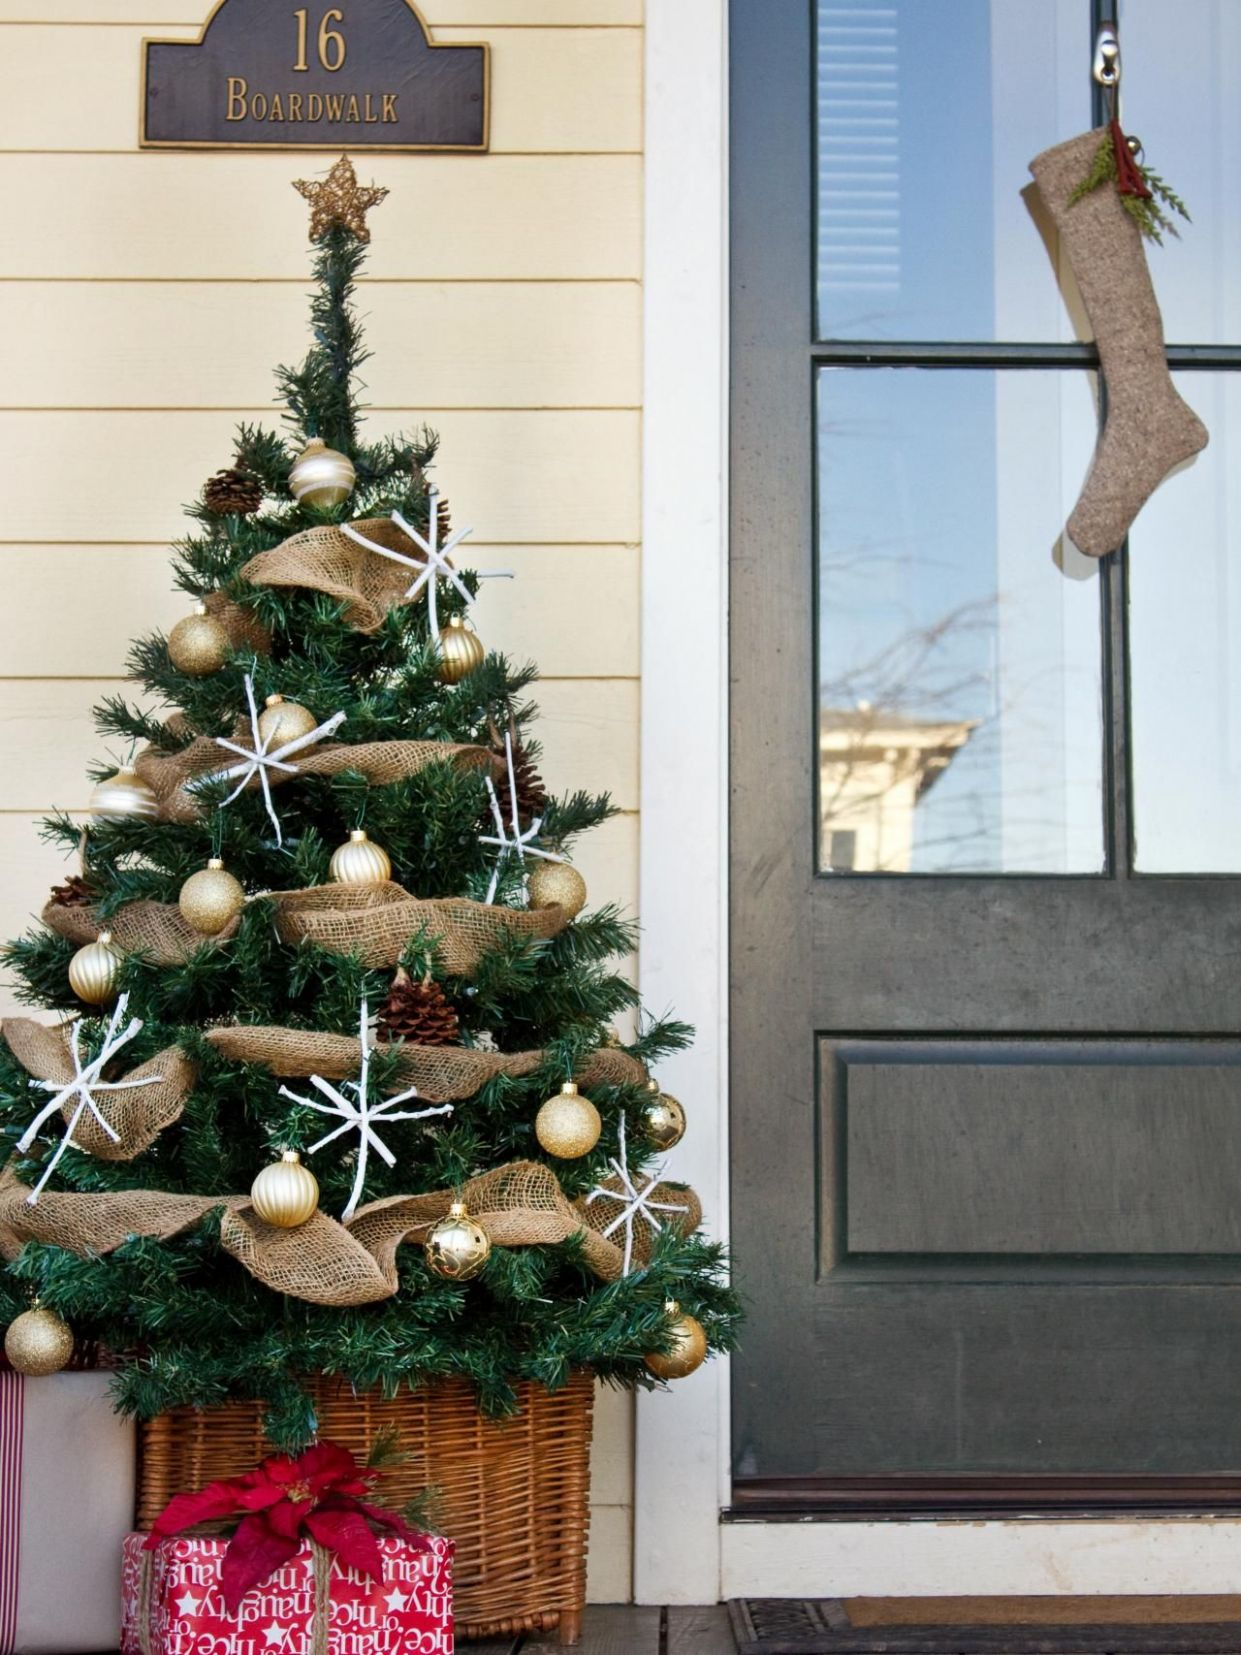 11 Best Outdoor Christmas Decorations for 11 🎄 (With images ..